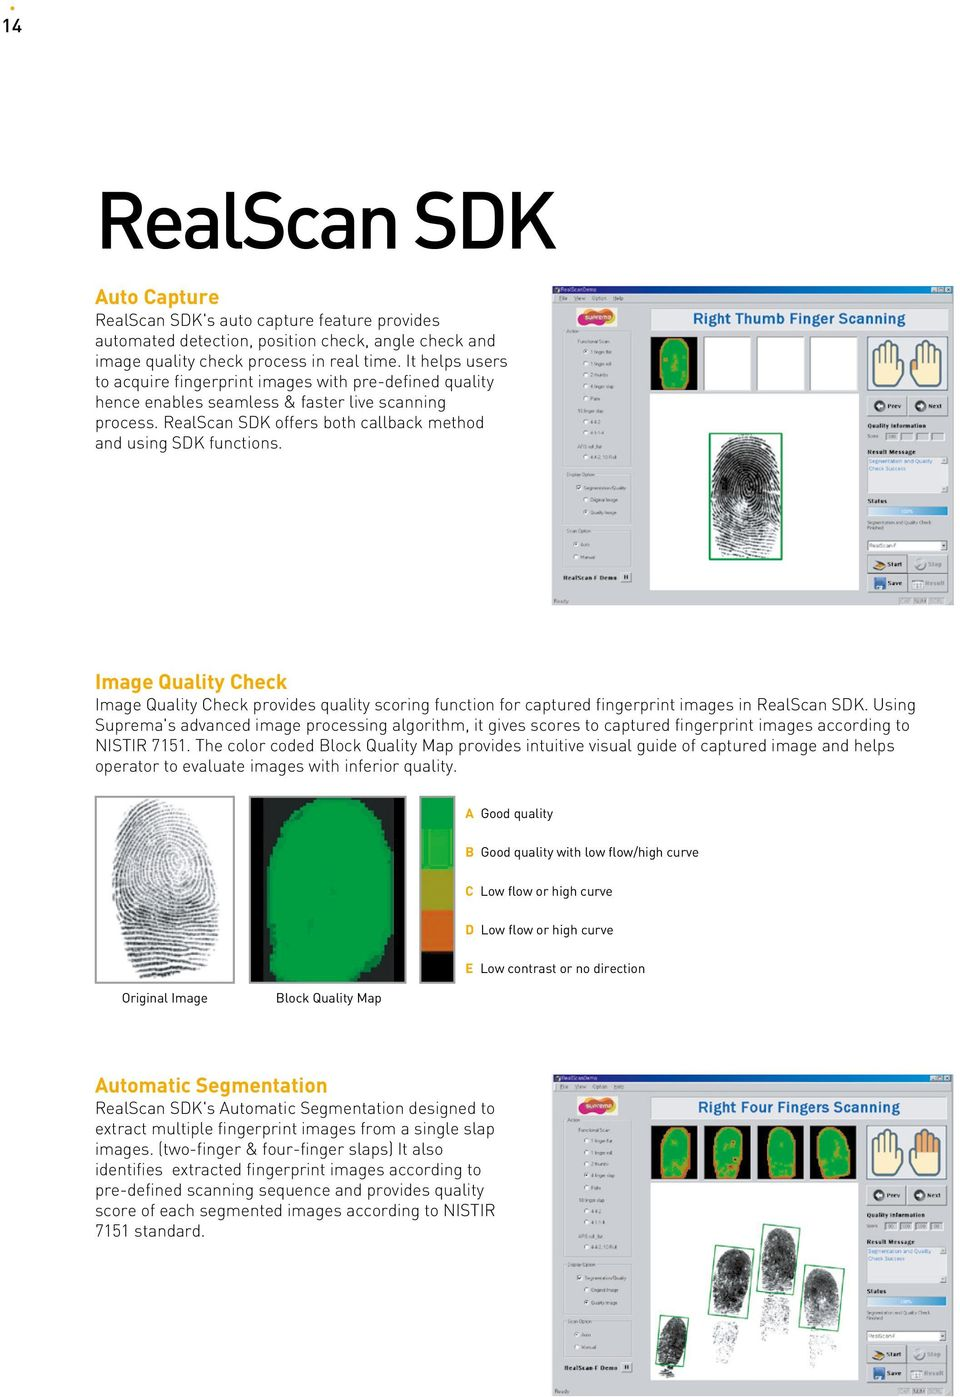 Image Quality Check Image Quality Check provides quality scoring function for captured fingerprint images in RealScan SDK.